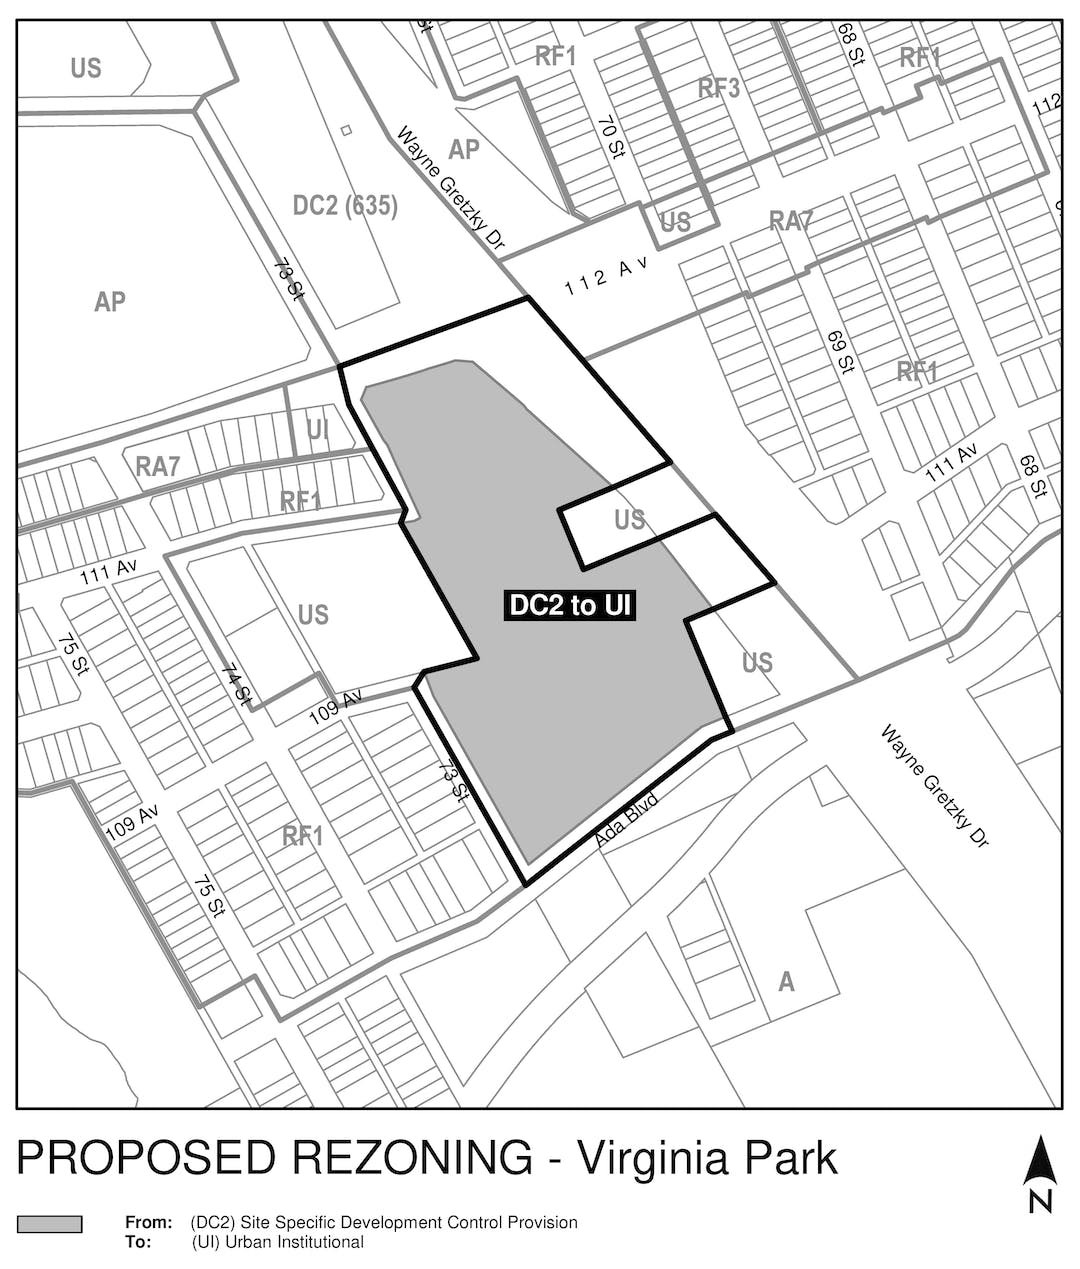 """a black and white map of the area around the property that is proposed to be rezoned (7128 Ada Boulevard), with a grey box on the property, labelled """"DC2 to UI""""."""